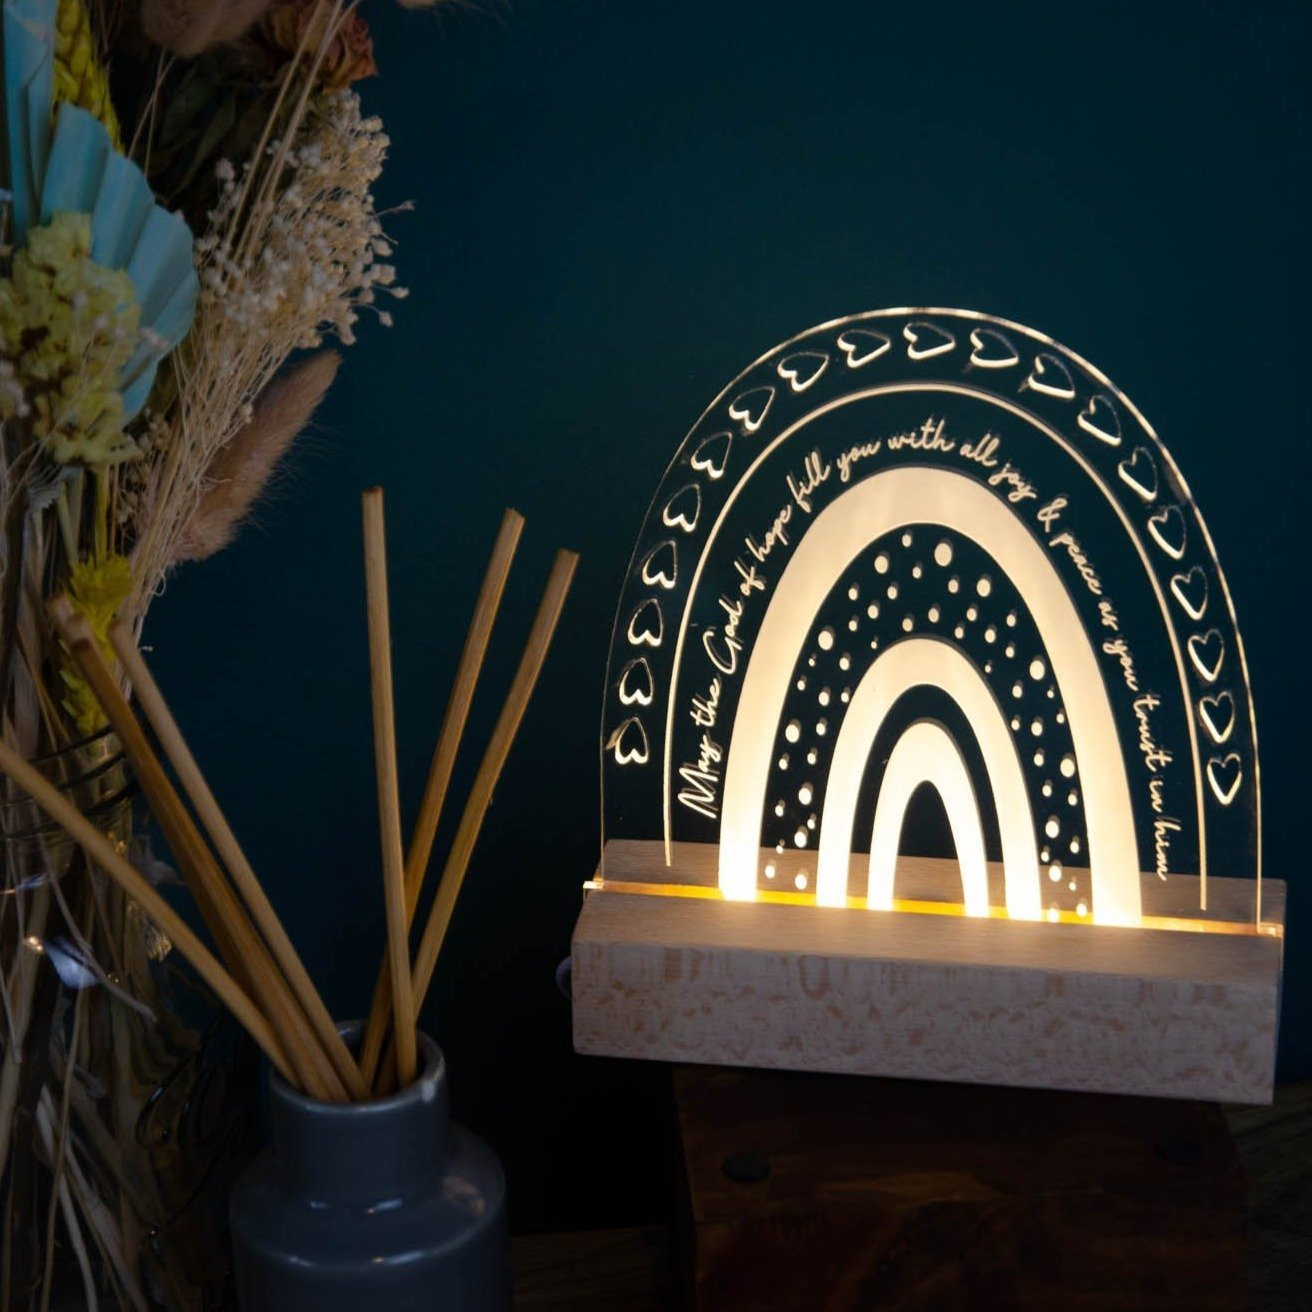 God of Hope night light design